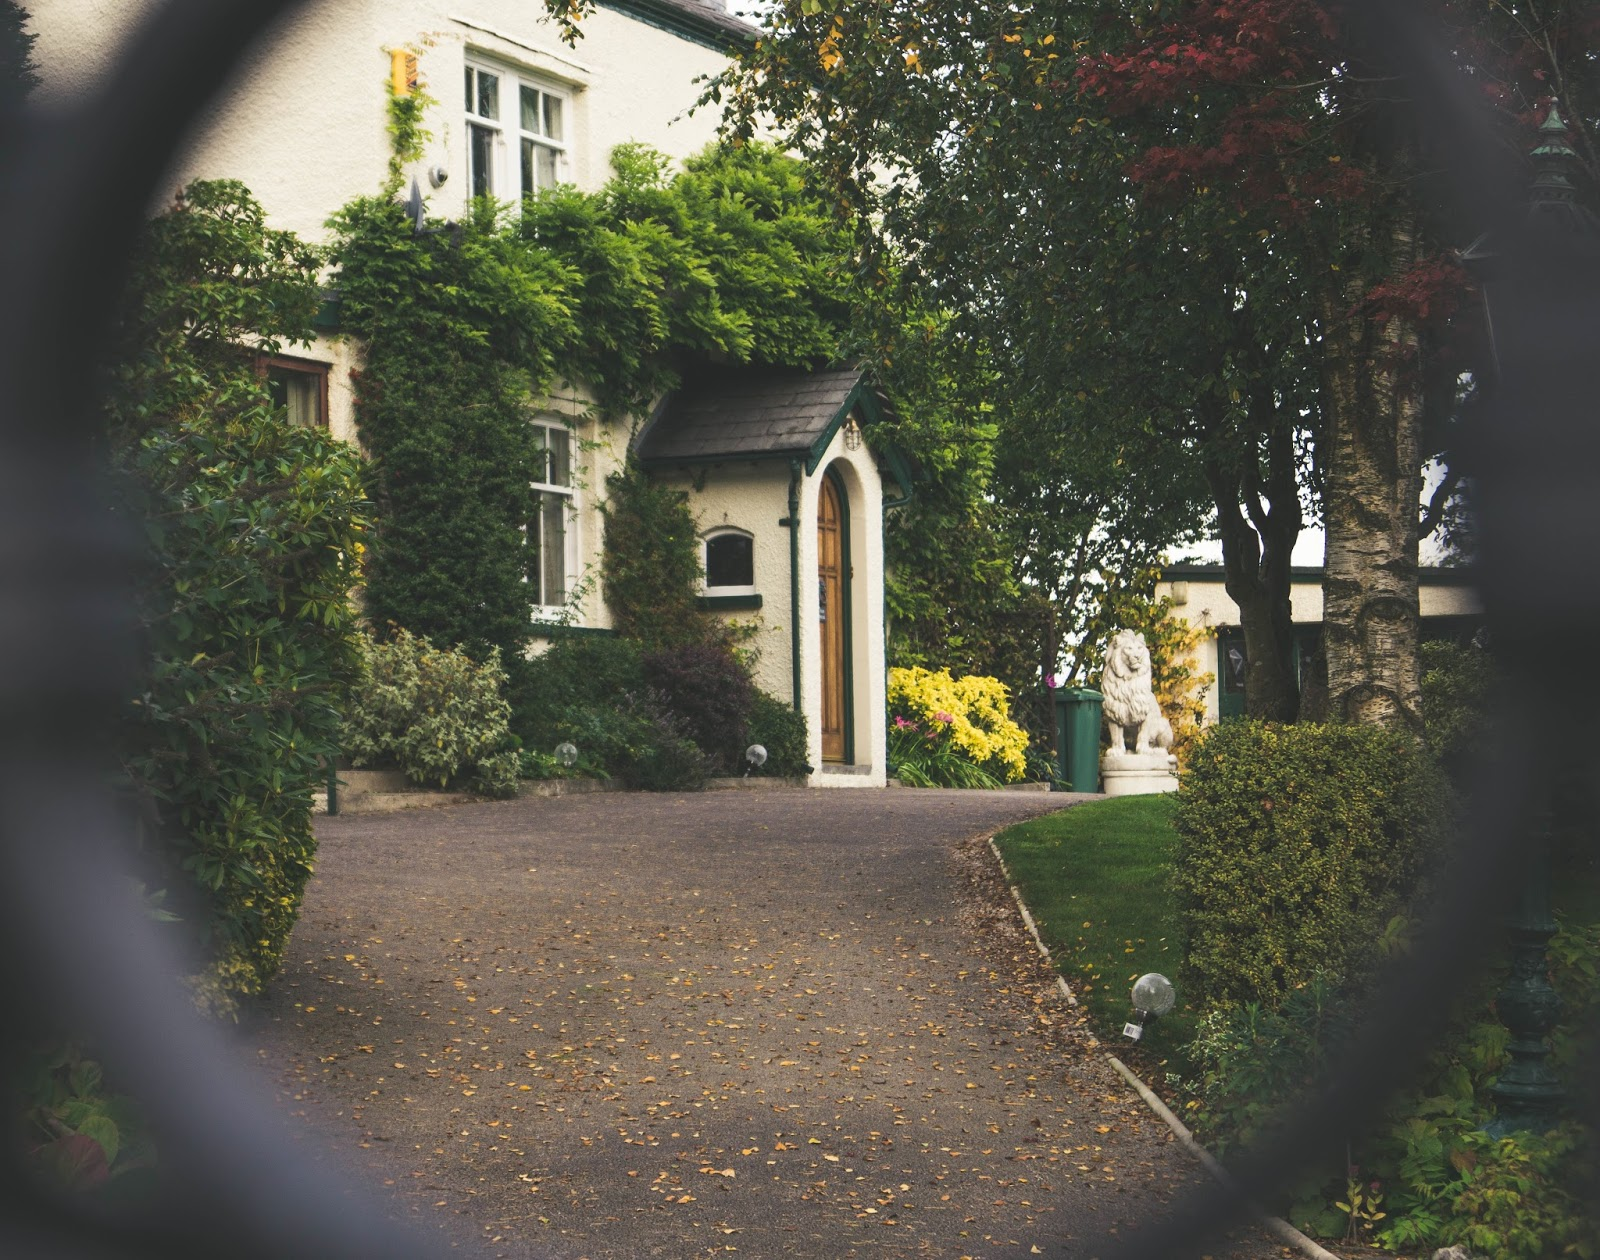 House seen through garden gate